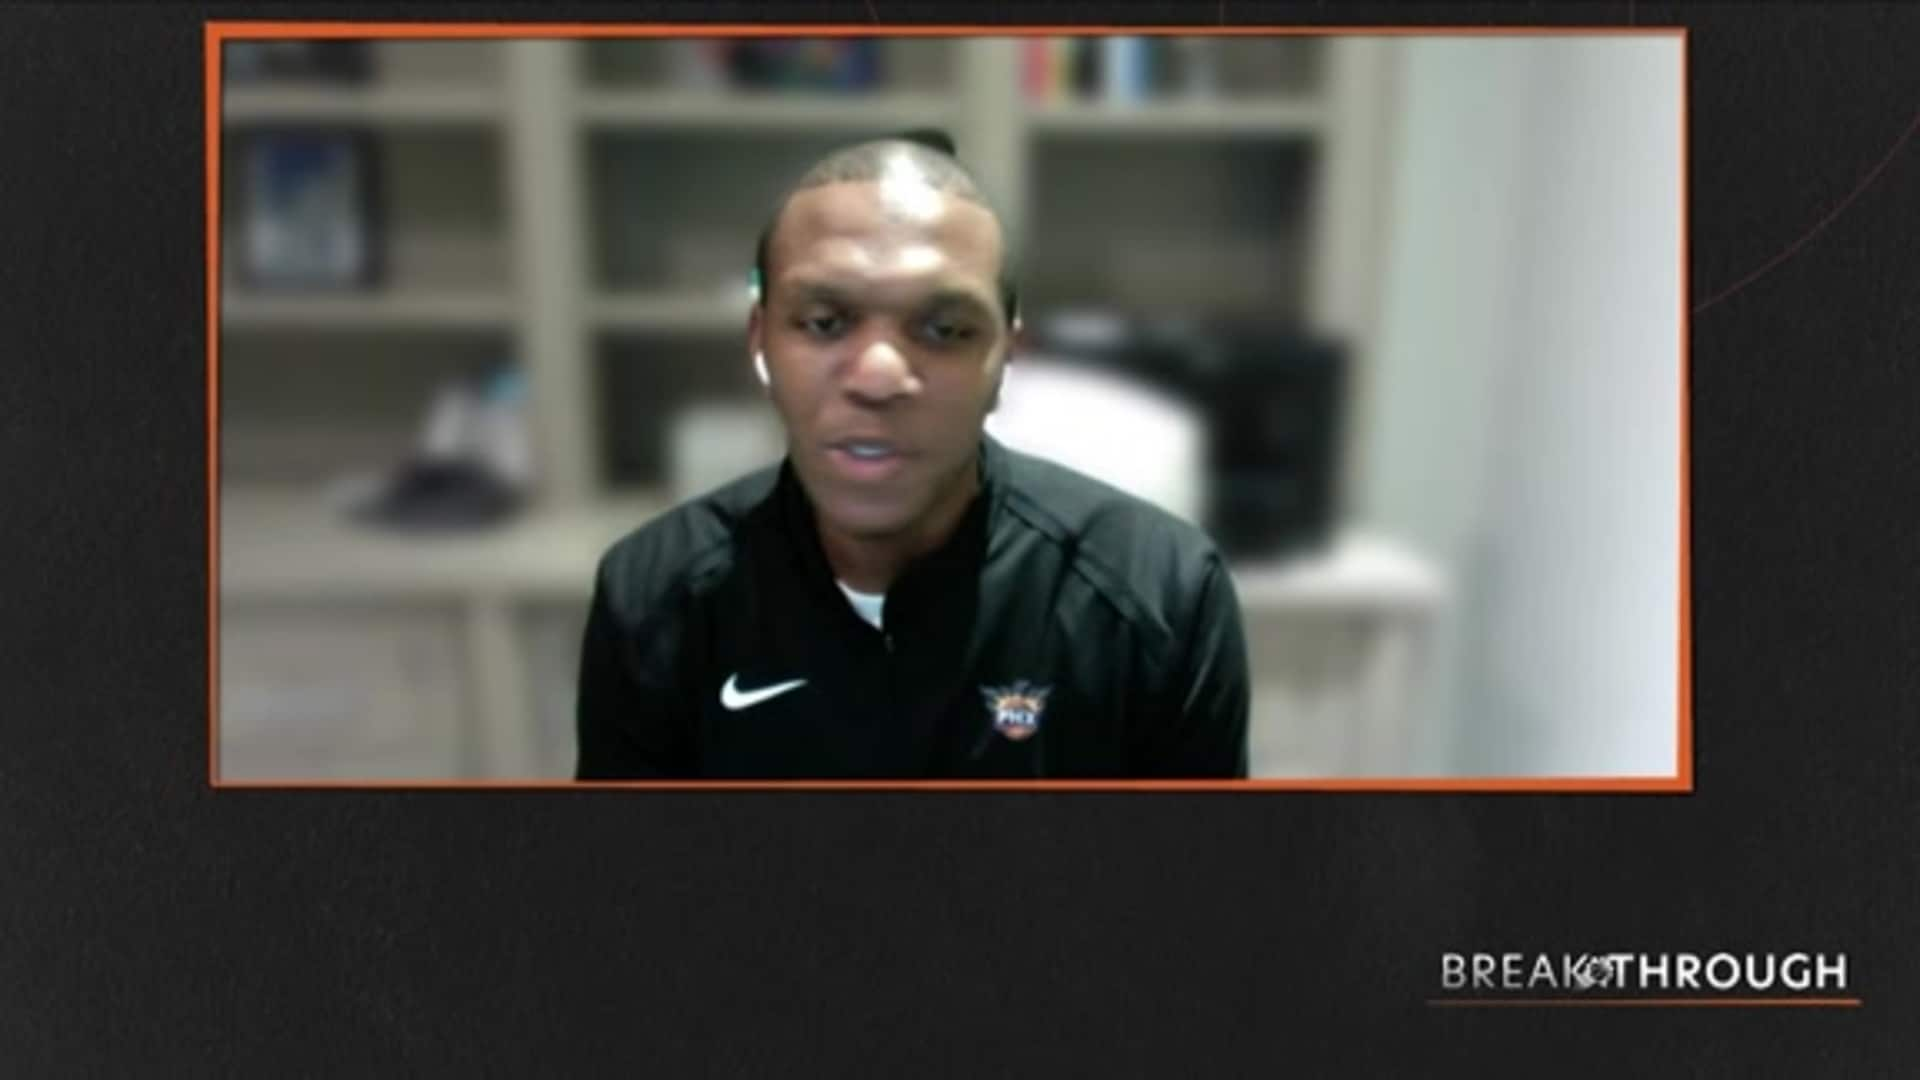 Breakthrough Livestream: James Jones on Key Traits of Suns Players